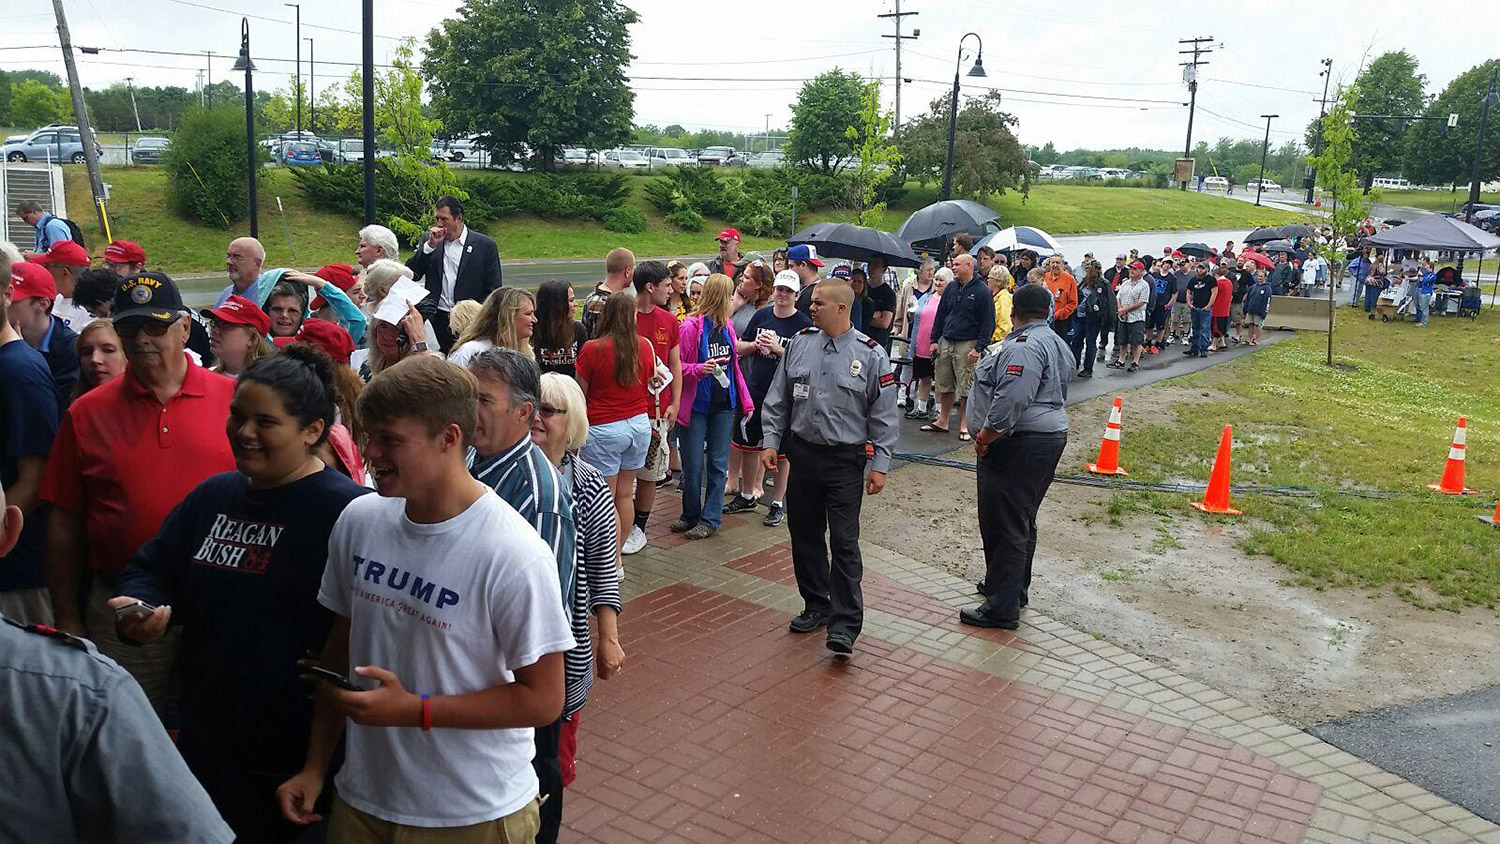 People line up in the rain early Wednesday afternoon to see Donald Trump at a 4 p.m. rally at the Cross Insurance Center in Bangor.